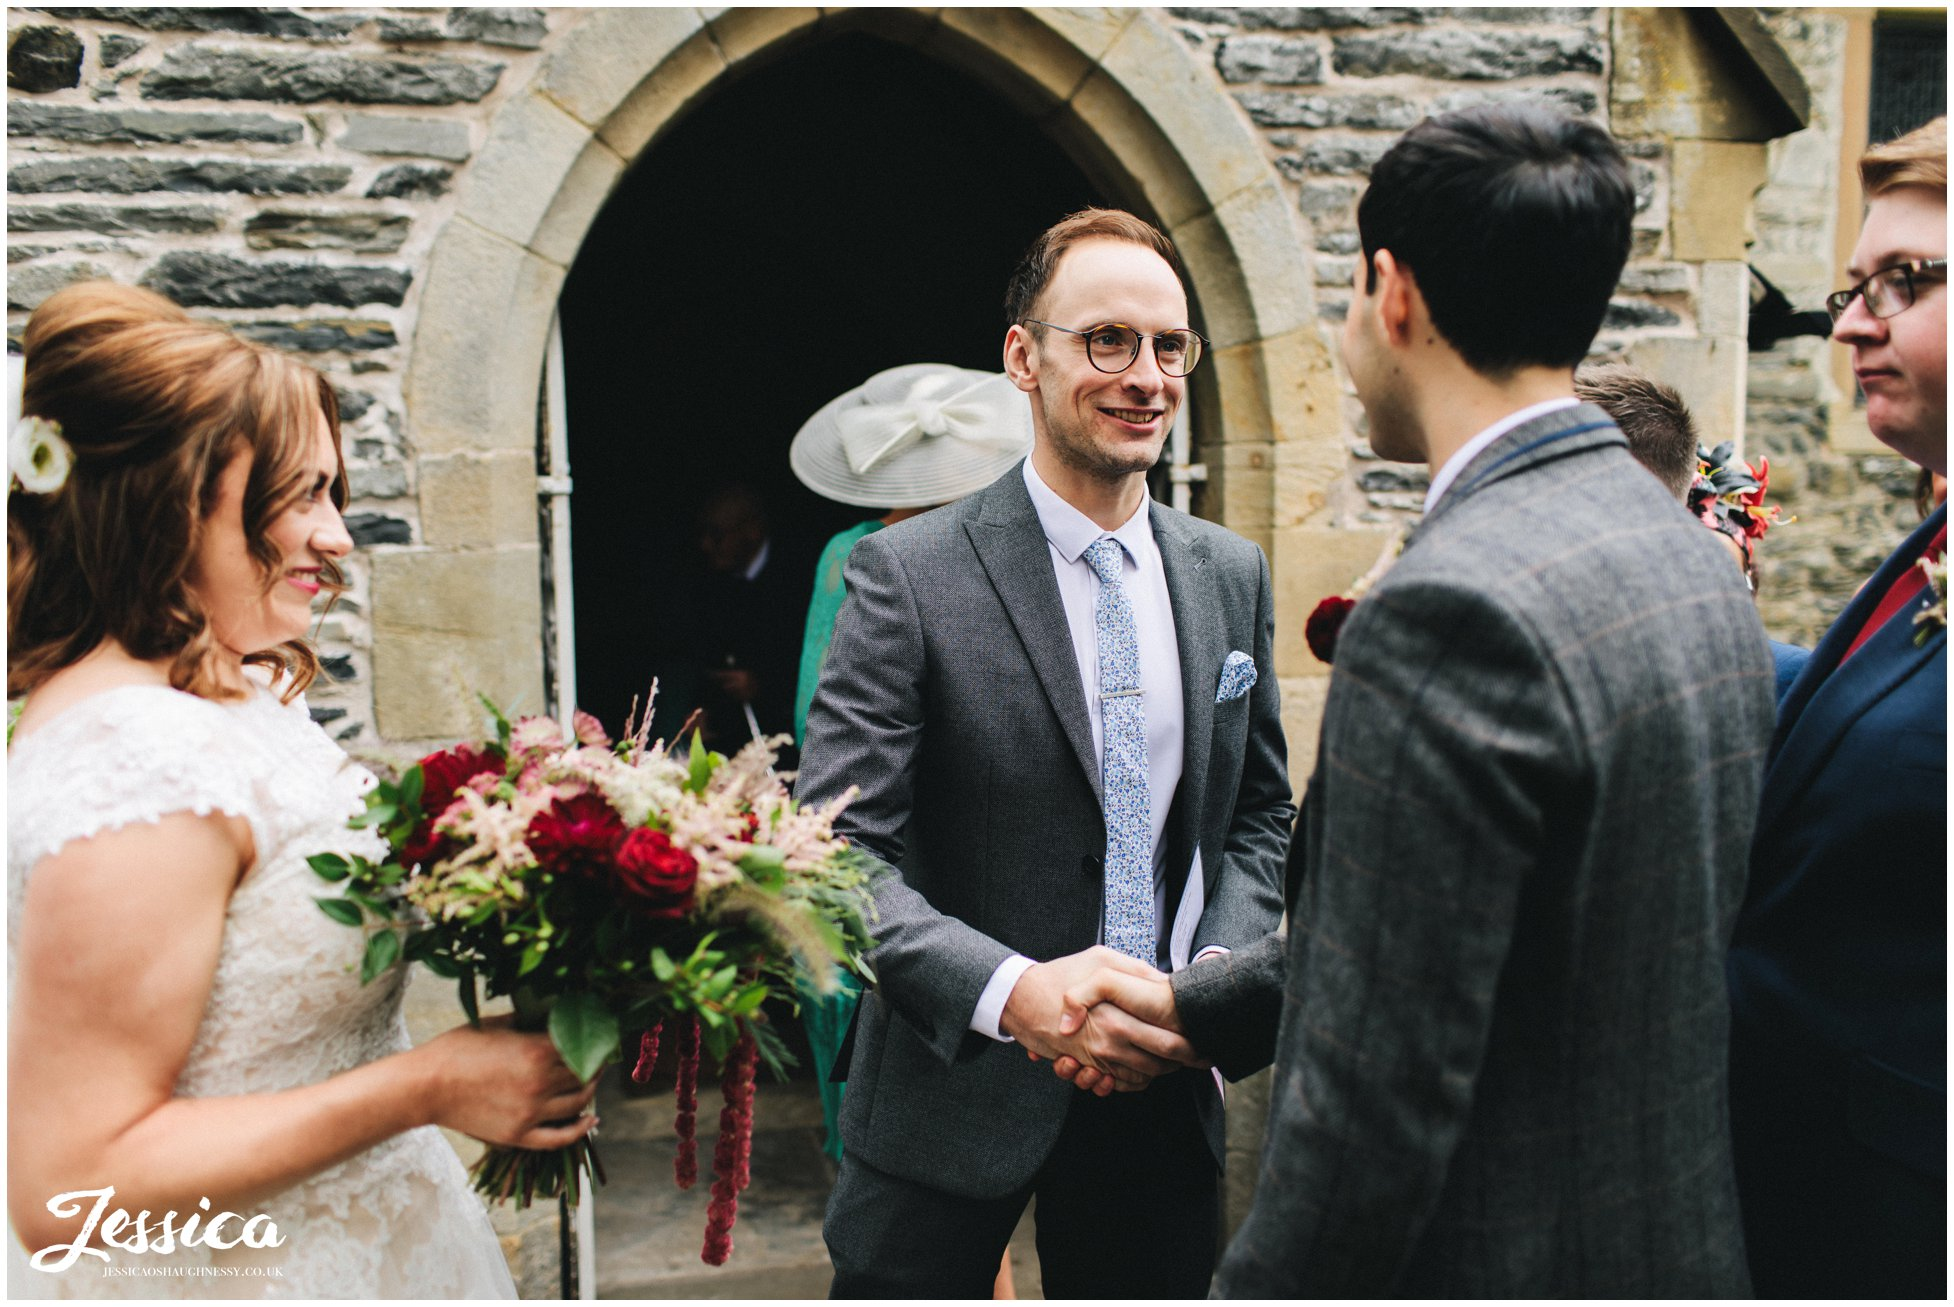 the brides brother shakes the grooms hand